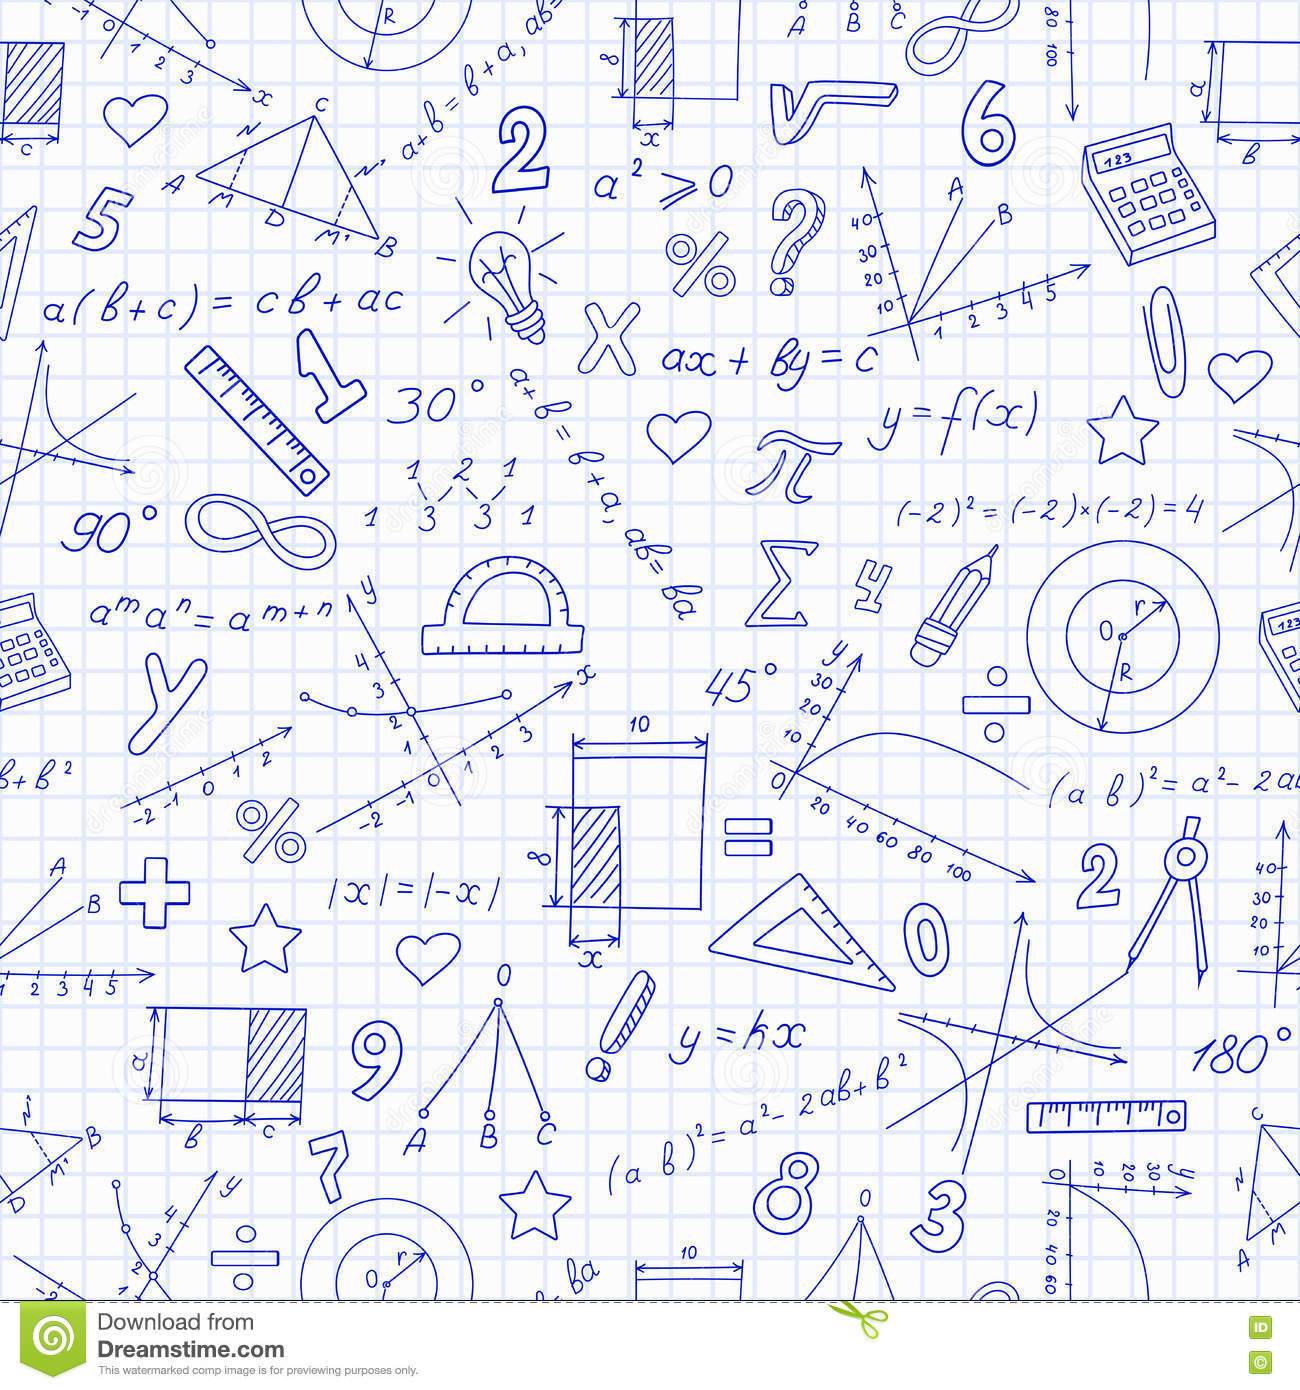 hight resolution of seamless pattern with formulas and charts on the topic of mathematics and education dark blue outline on a light background in a cage